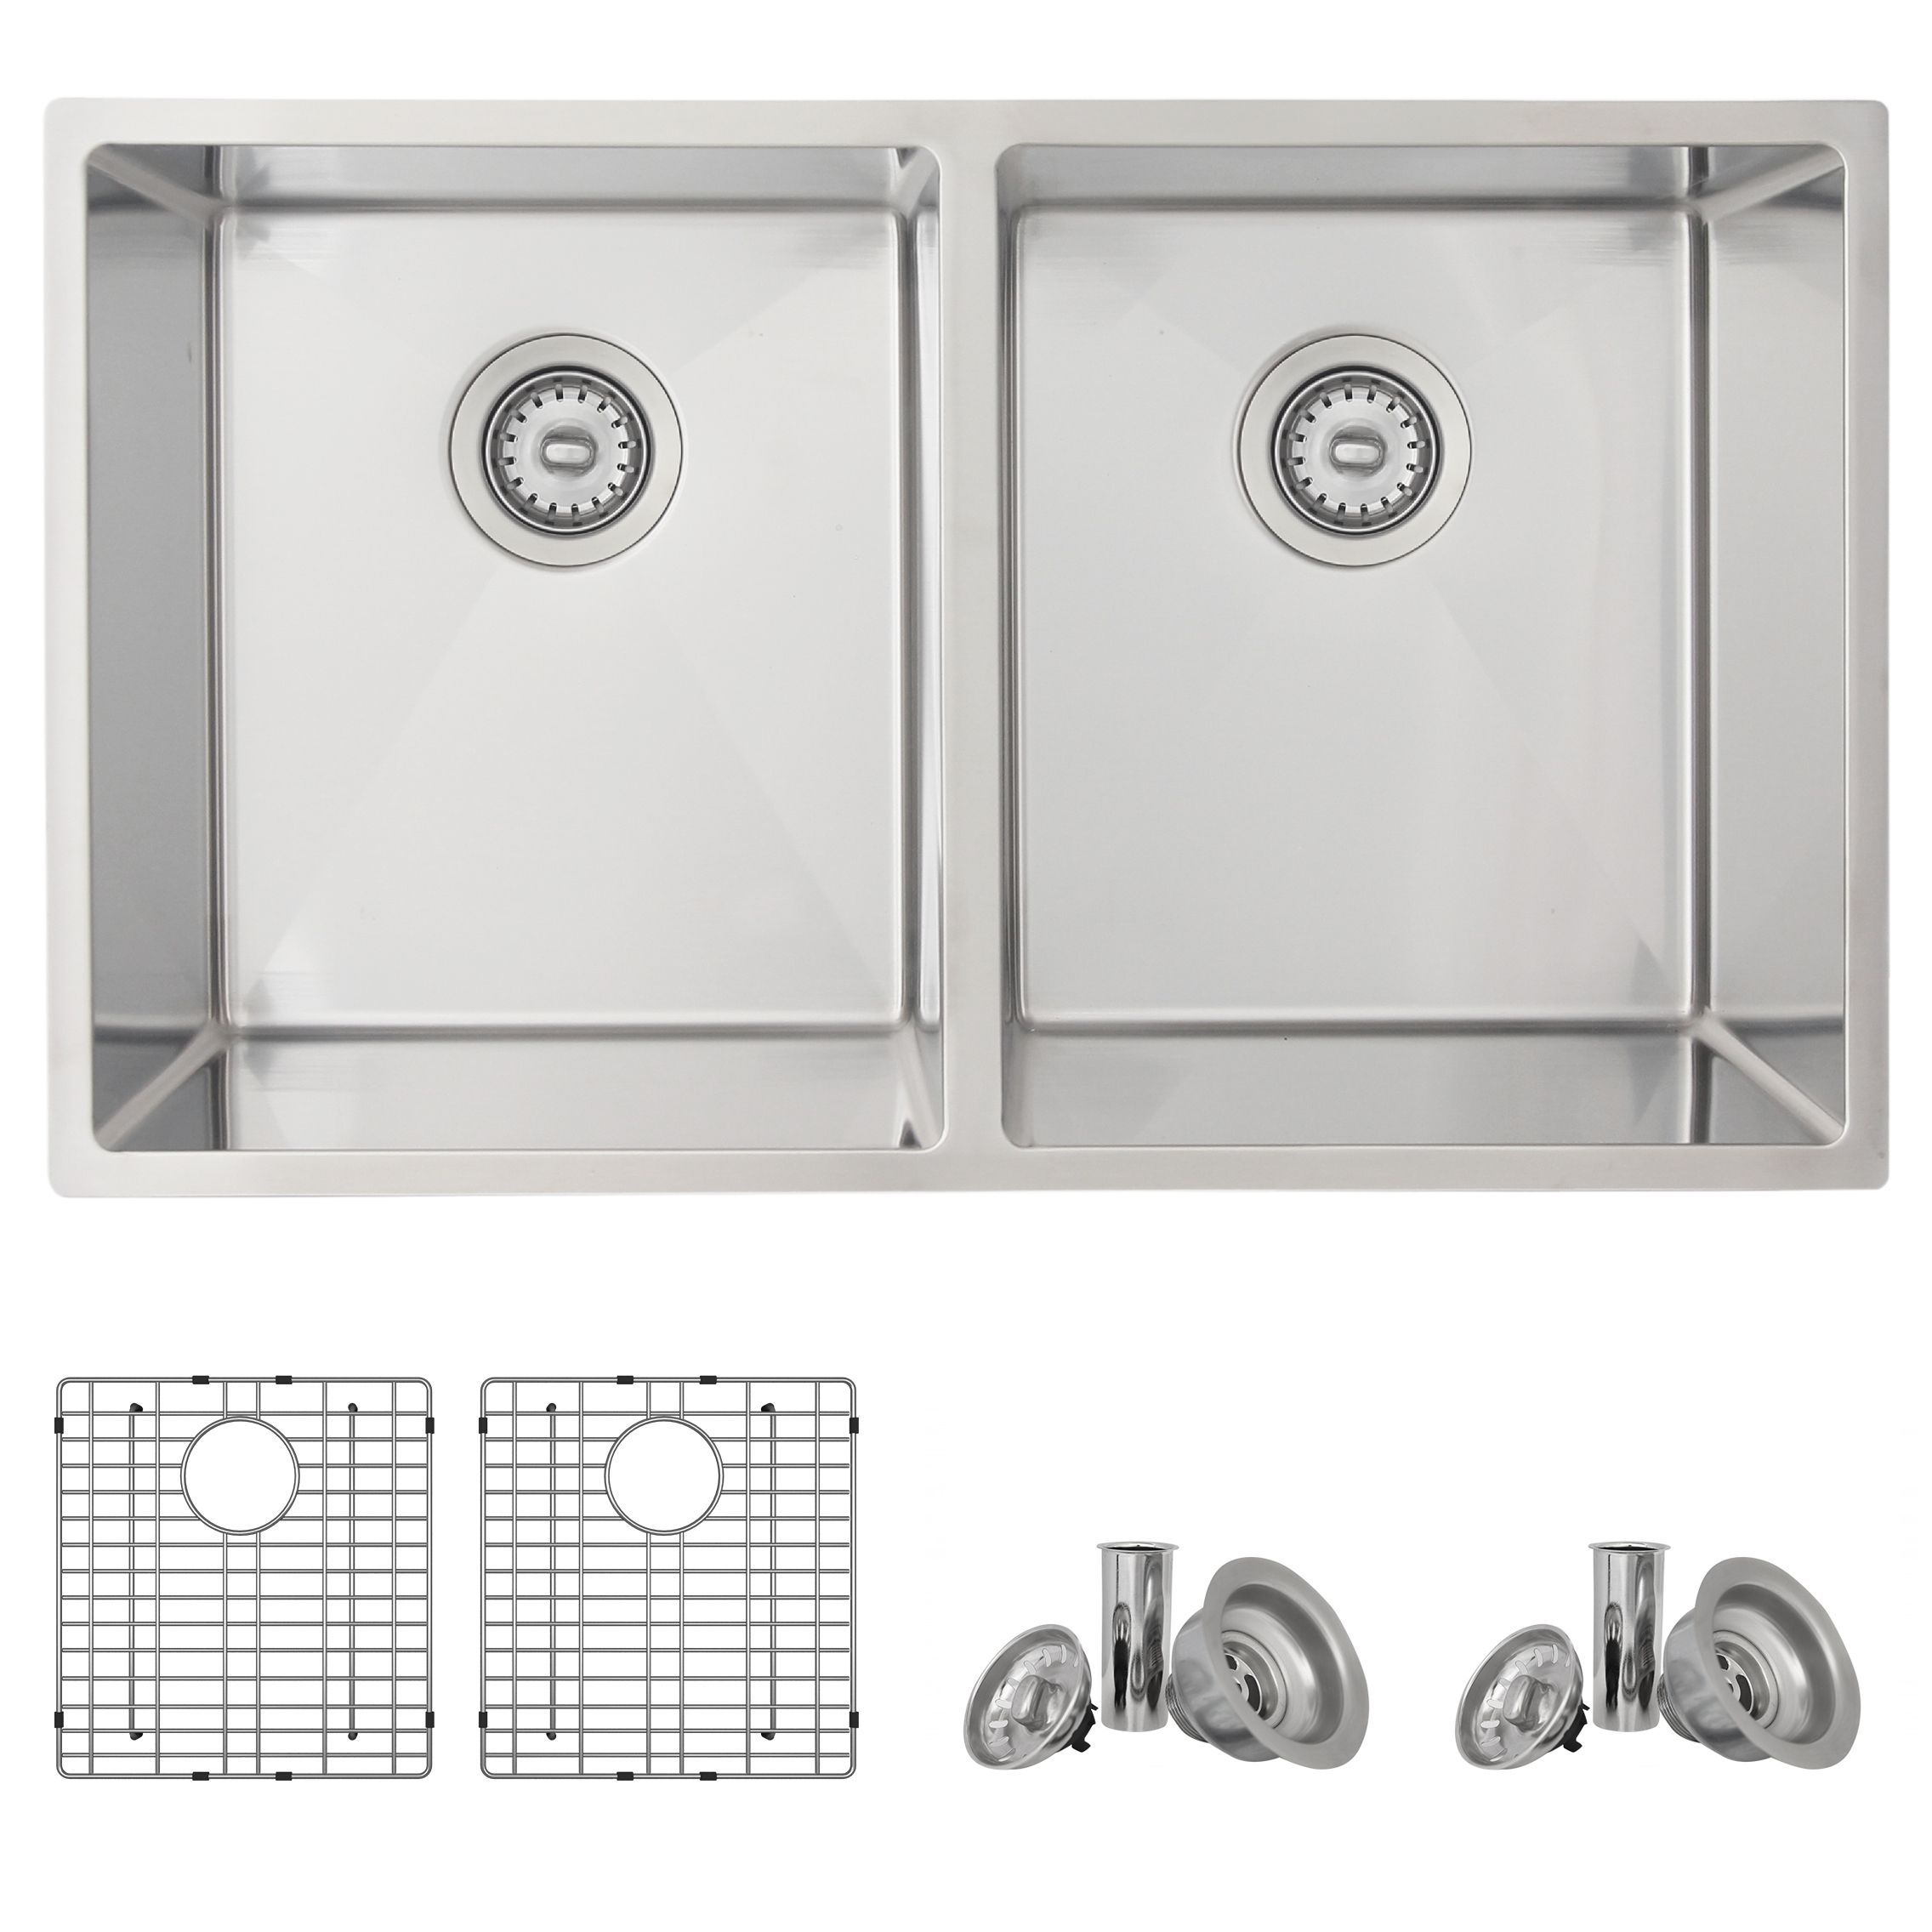 Azuni - Maxi C233  32 inch L x 18 inch W Double Basin Undermount Kitchen Sink With Grids and Basket Strainers